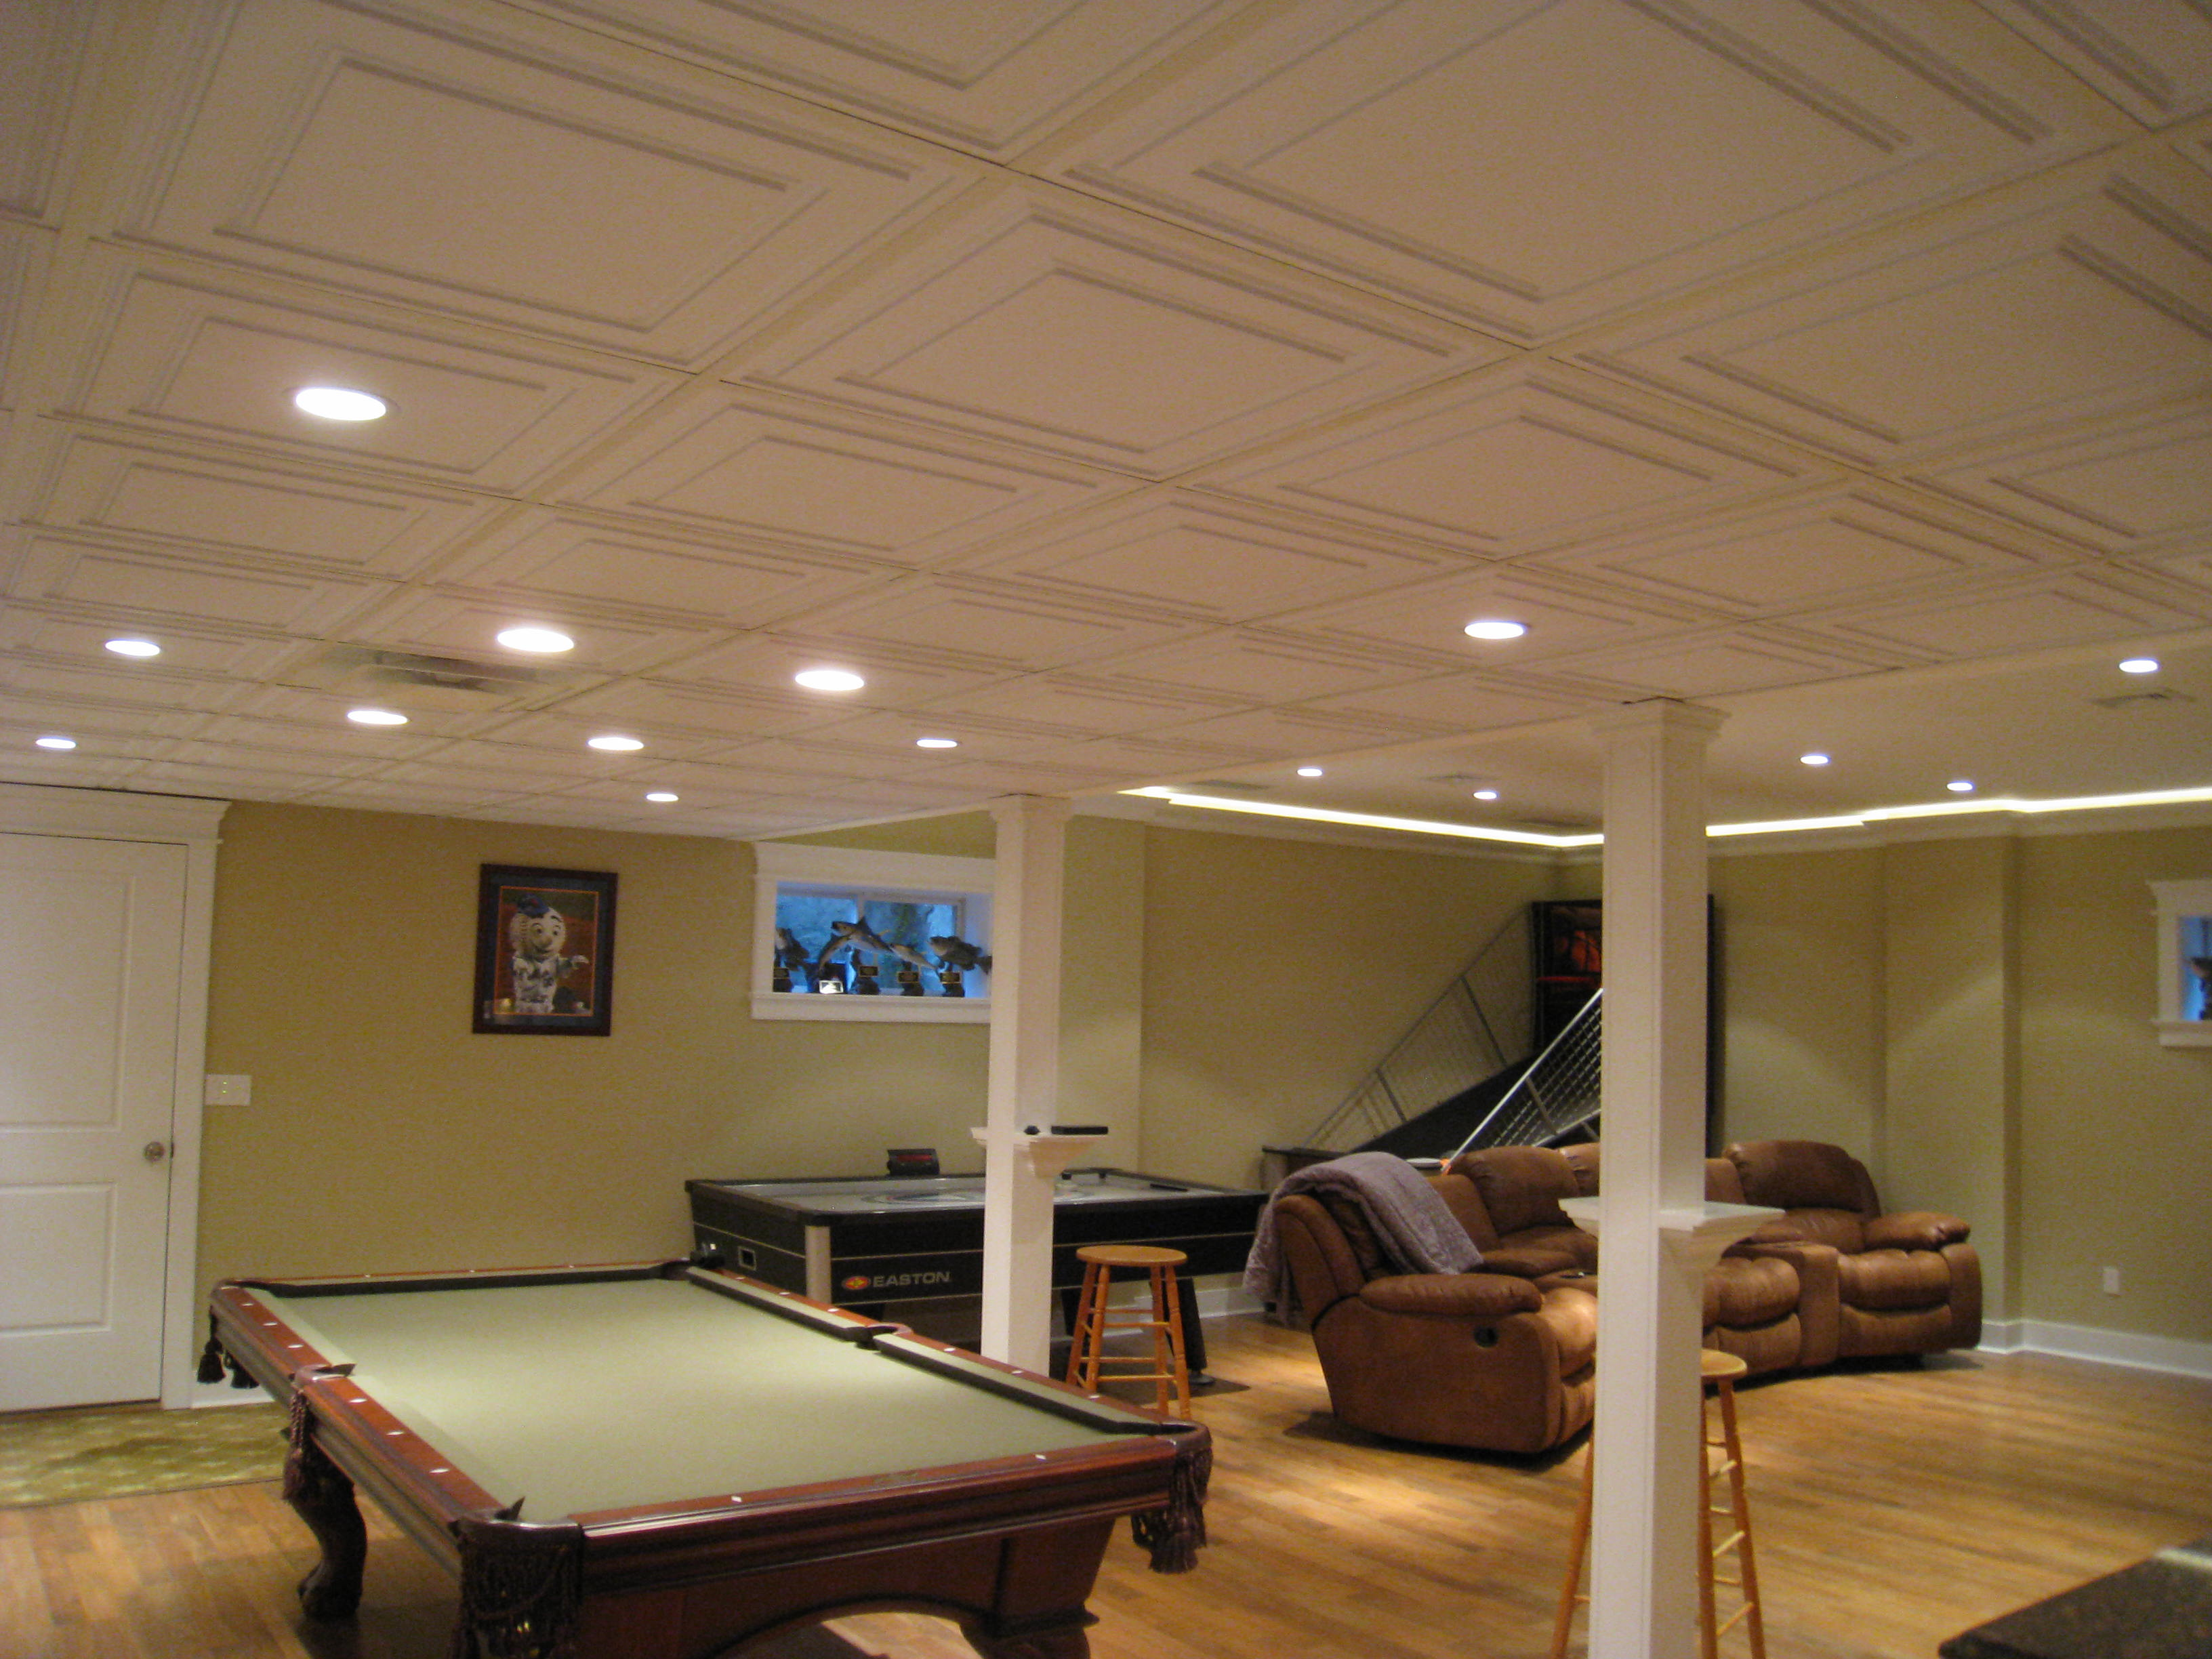 High Quality Stratford Ceiling Tiles At Wholesale Price - ISC